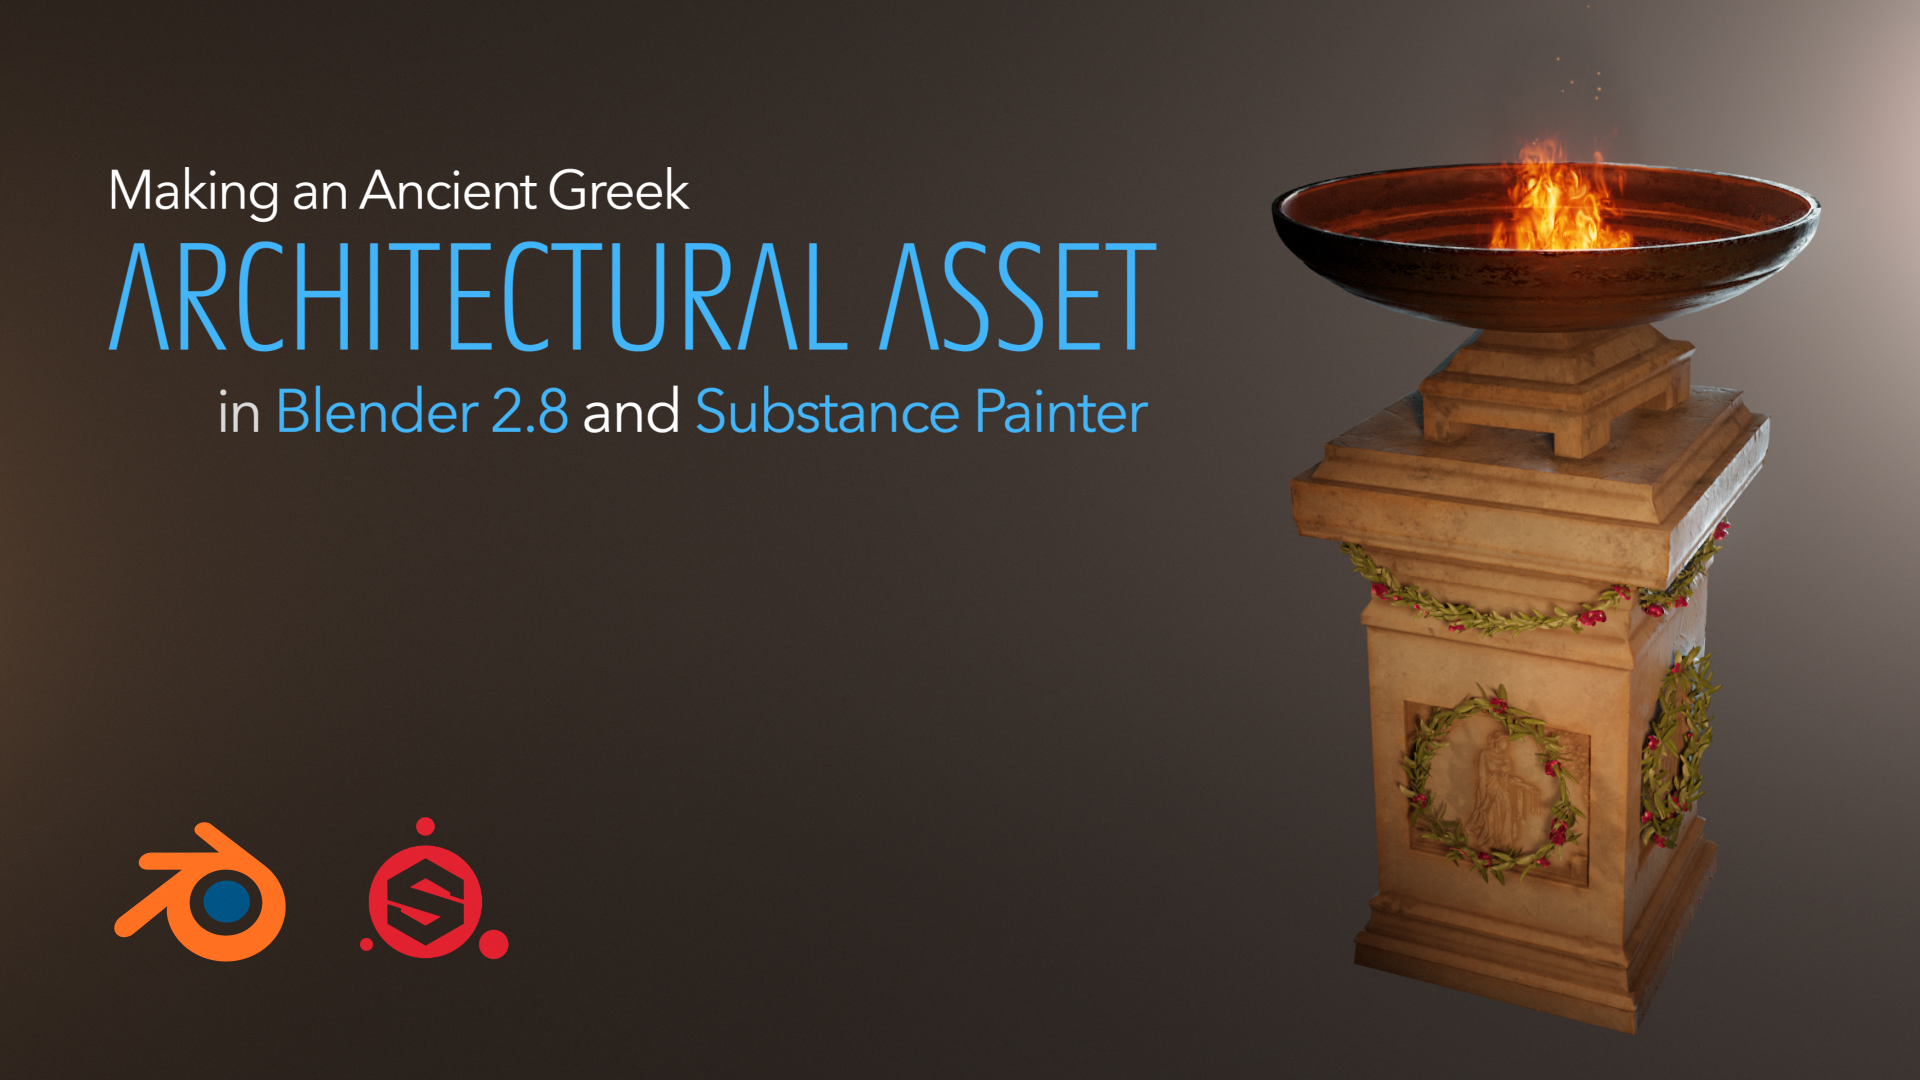 In this free beginner series you will learn how to model an architectural asset, sculpt engravings, UV the asset, add fire and render it. We will be also texturing it in the Substance Painter.